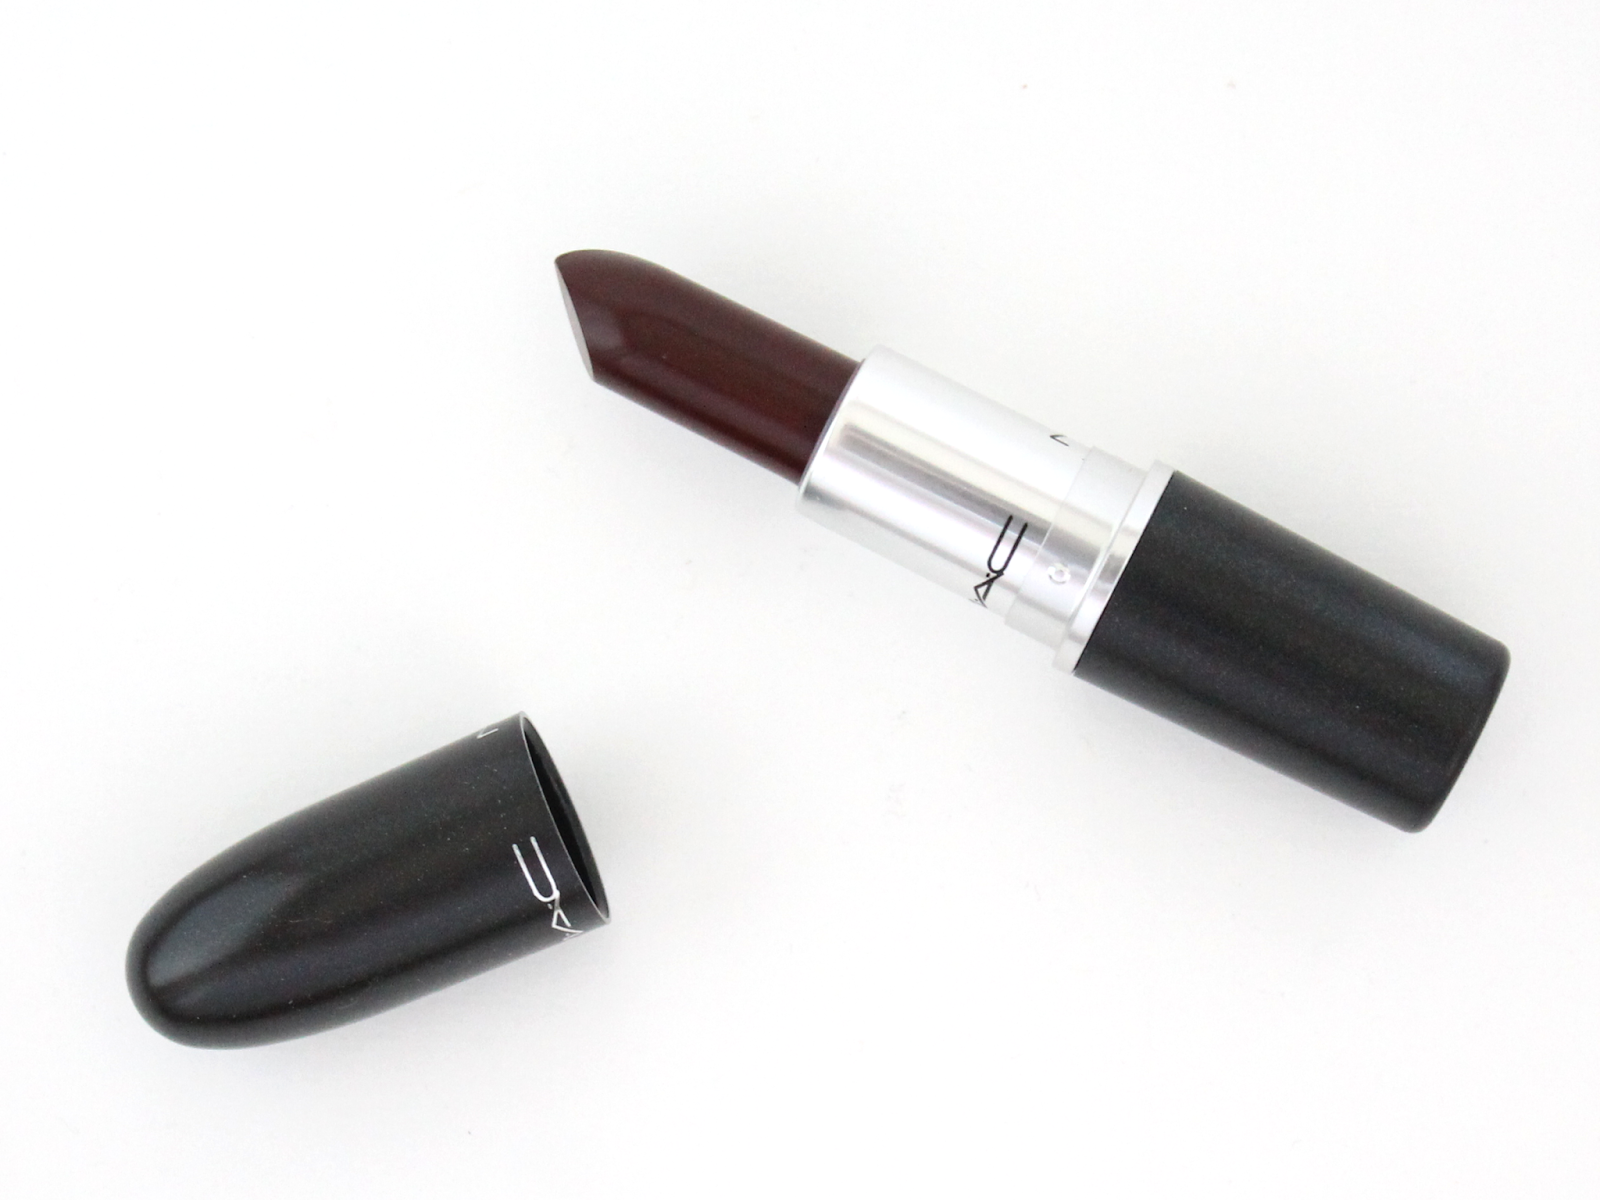 mac film noir lipstick - photo #18